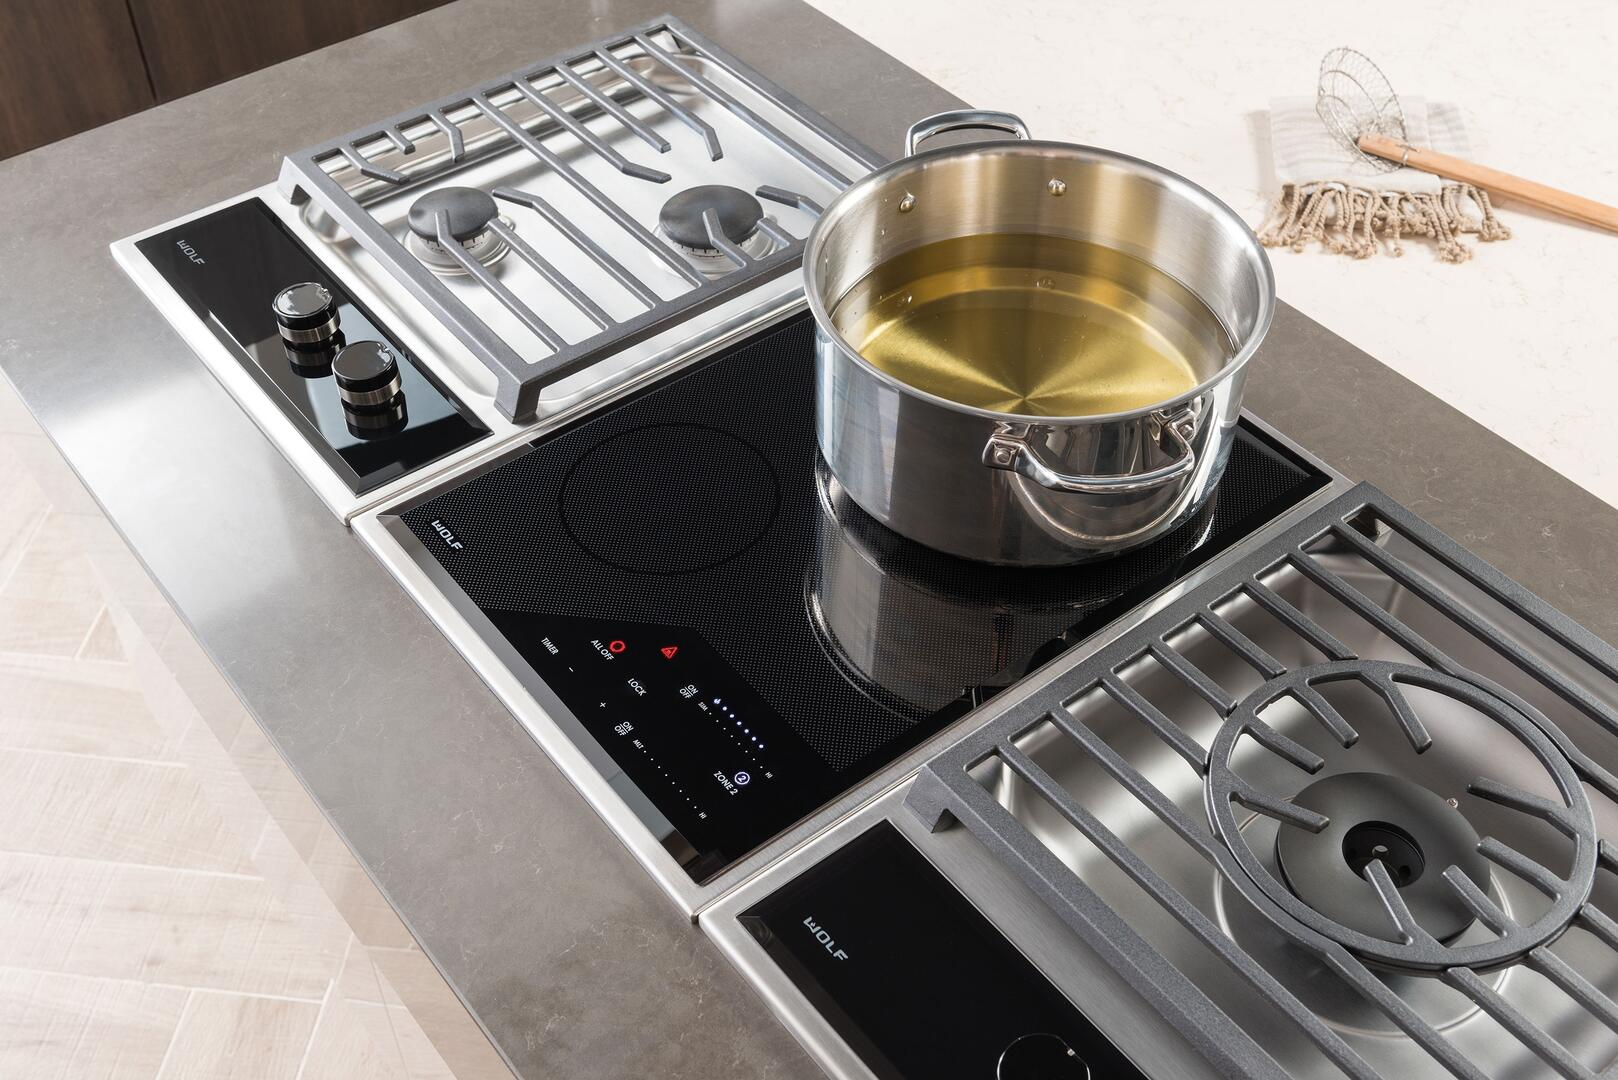 wolf ce152tfs 15 inch stainless steel 2 element electric cooktop appliances connection. Black Bedroom Furniture Sets. Home Design Ideas